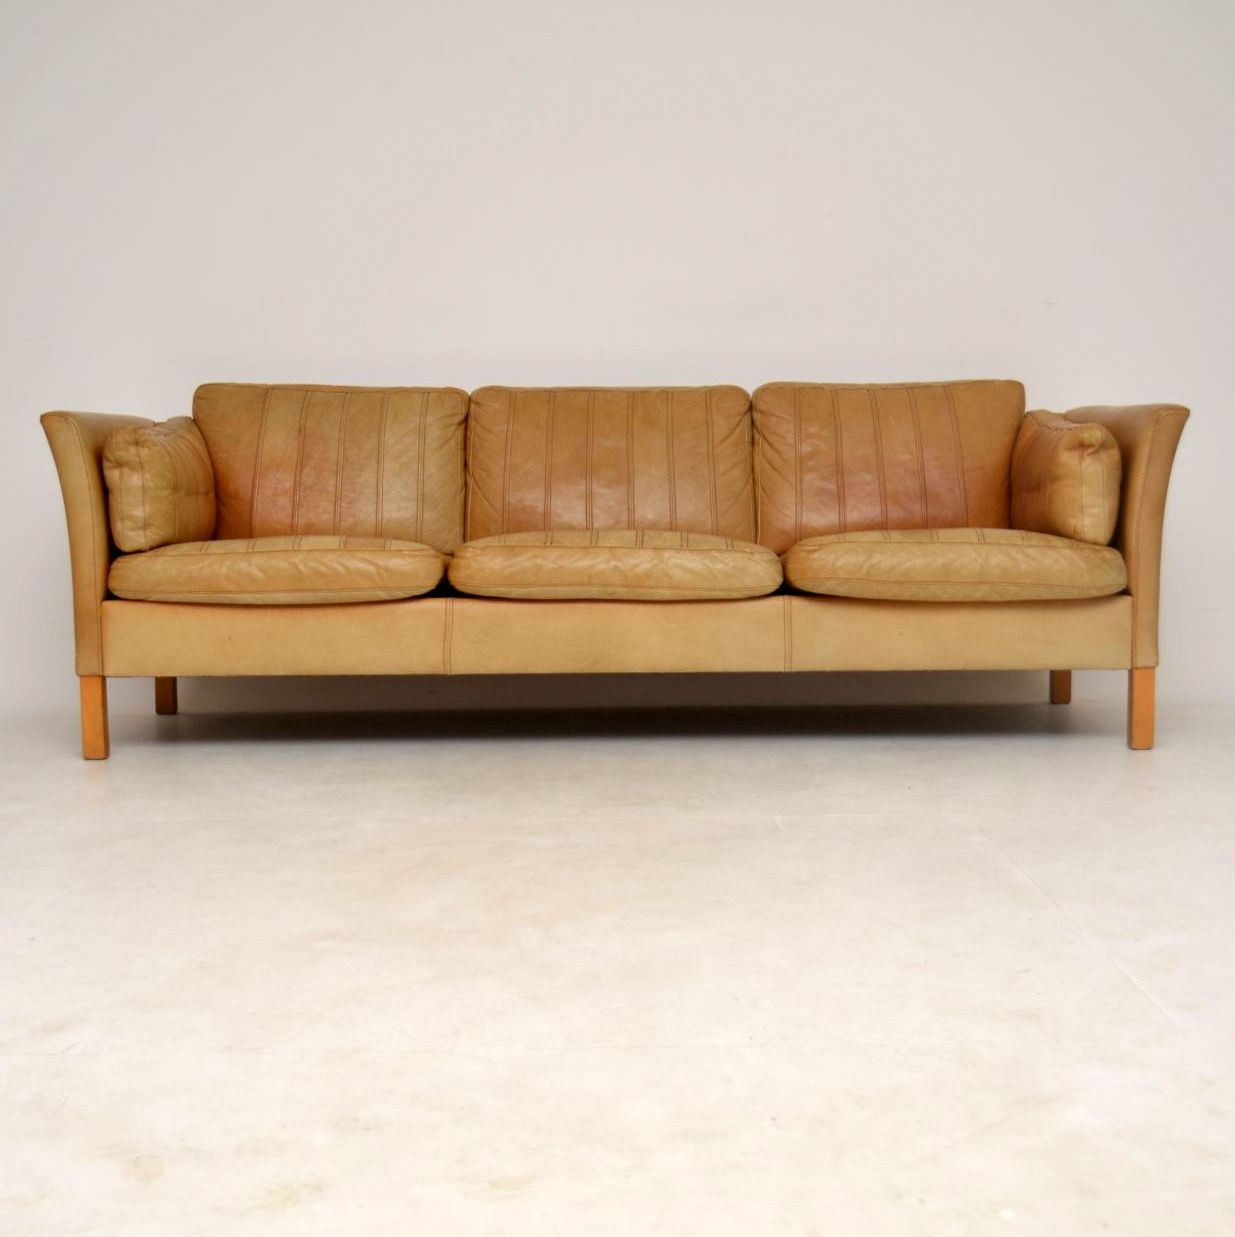 robinson and leather sofa magenta chairs vintage second hand awesome home